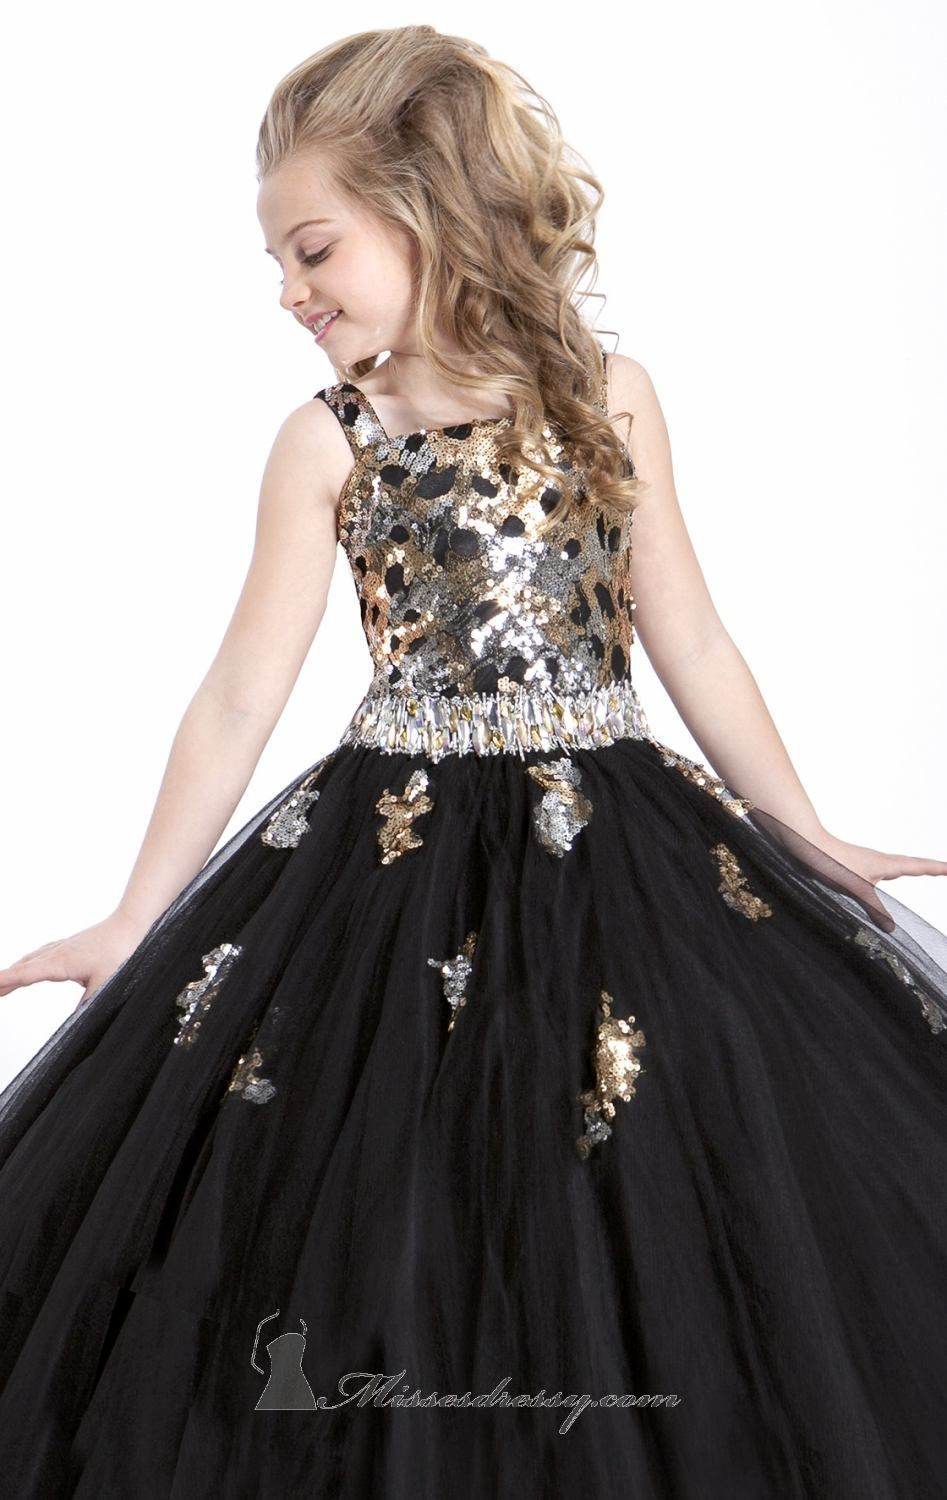 e6c9ea04b preteen formal dresses